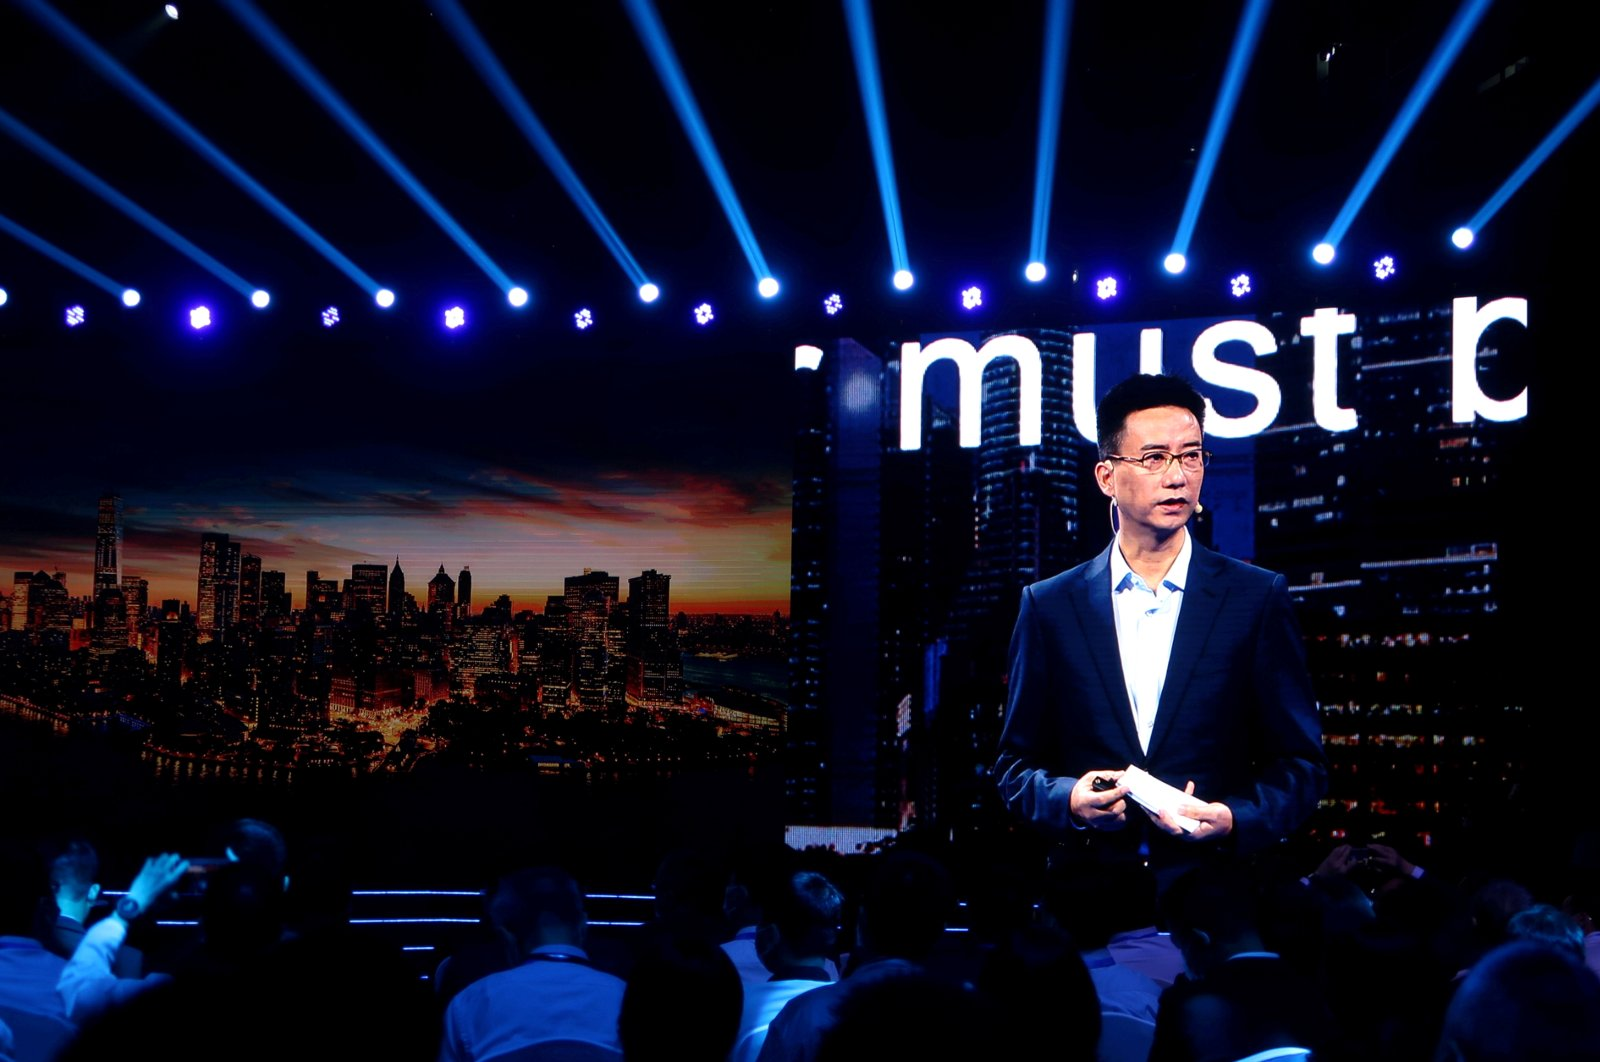 Simon Hu, CEO of Ant Group, is seen on a giant screen as he delivers a speech at the INCLUSION Fintech Conference in Shanghai, China, Sept. 24, 2020. (Reuters Photo)